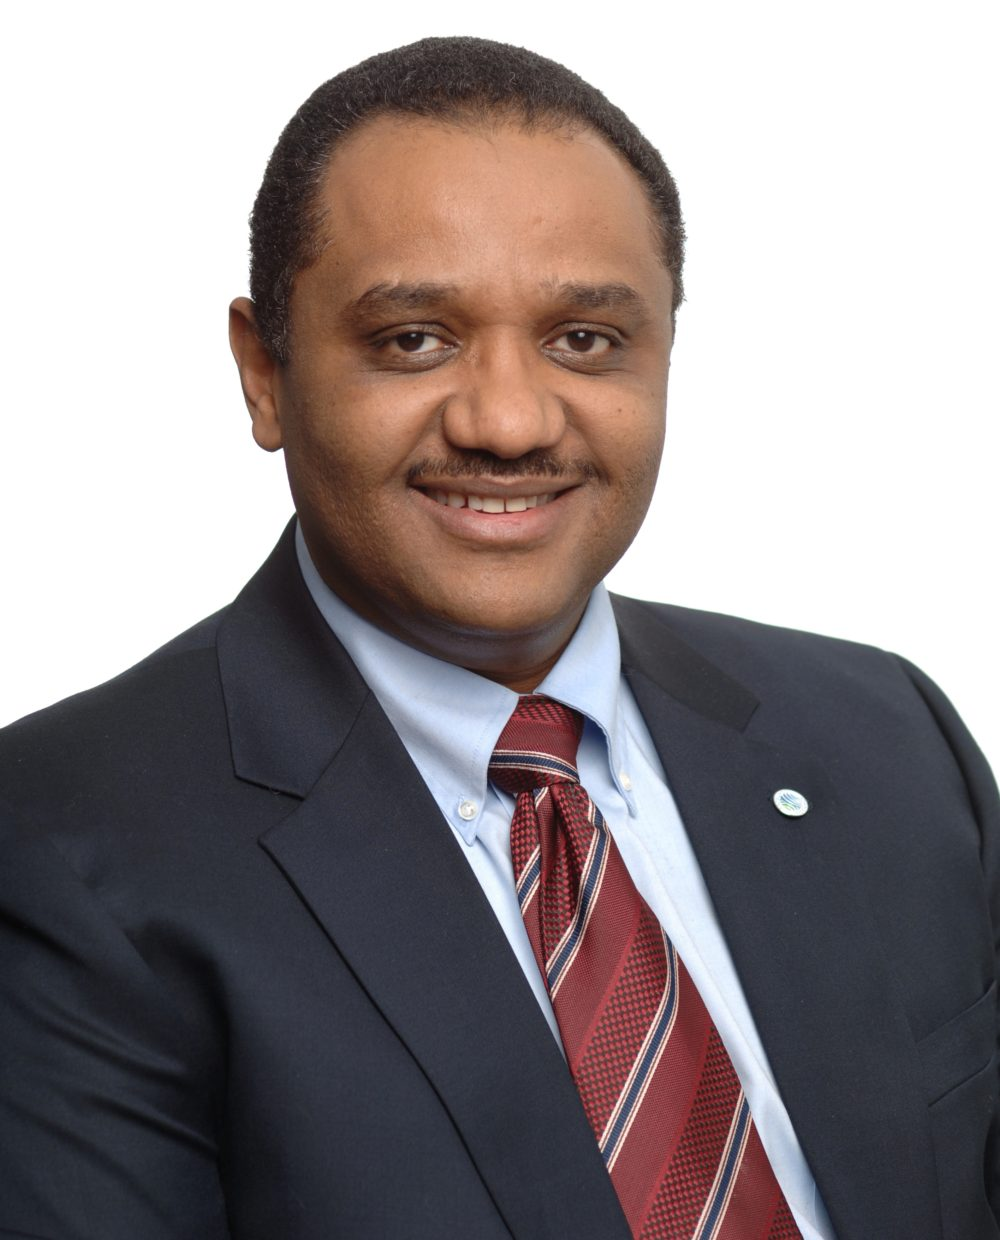 Ashraf Abdalla, Vice President and General Manager, Middle East and Africa, Johnson Controls